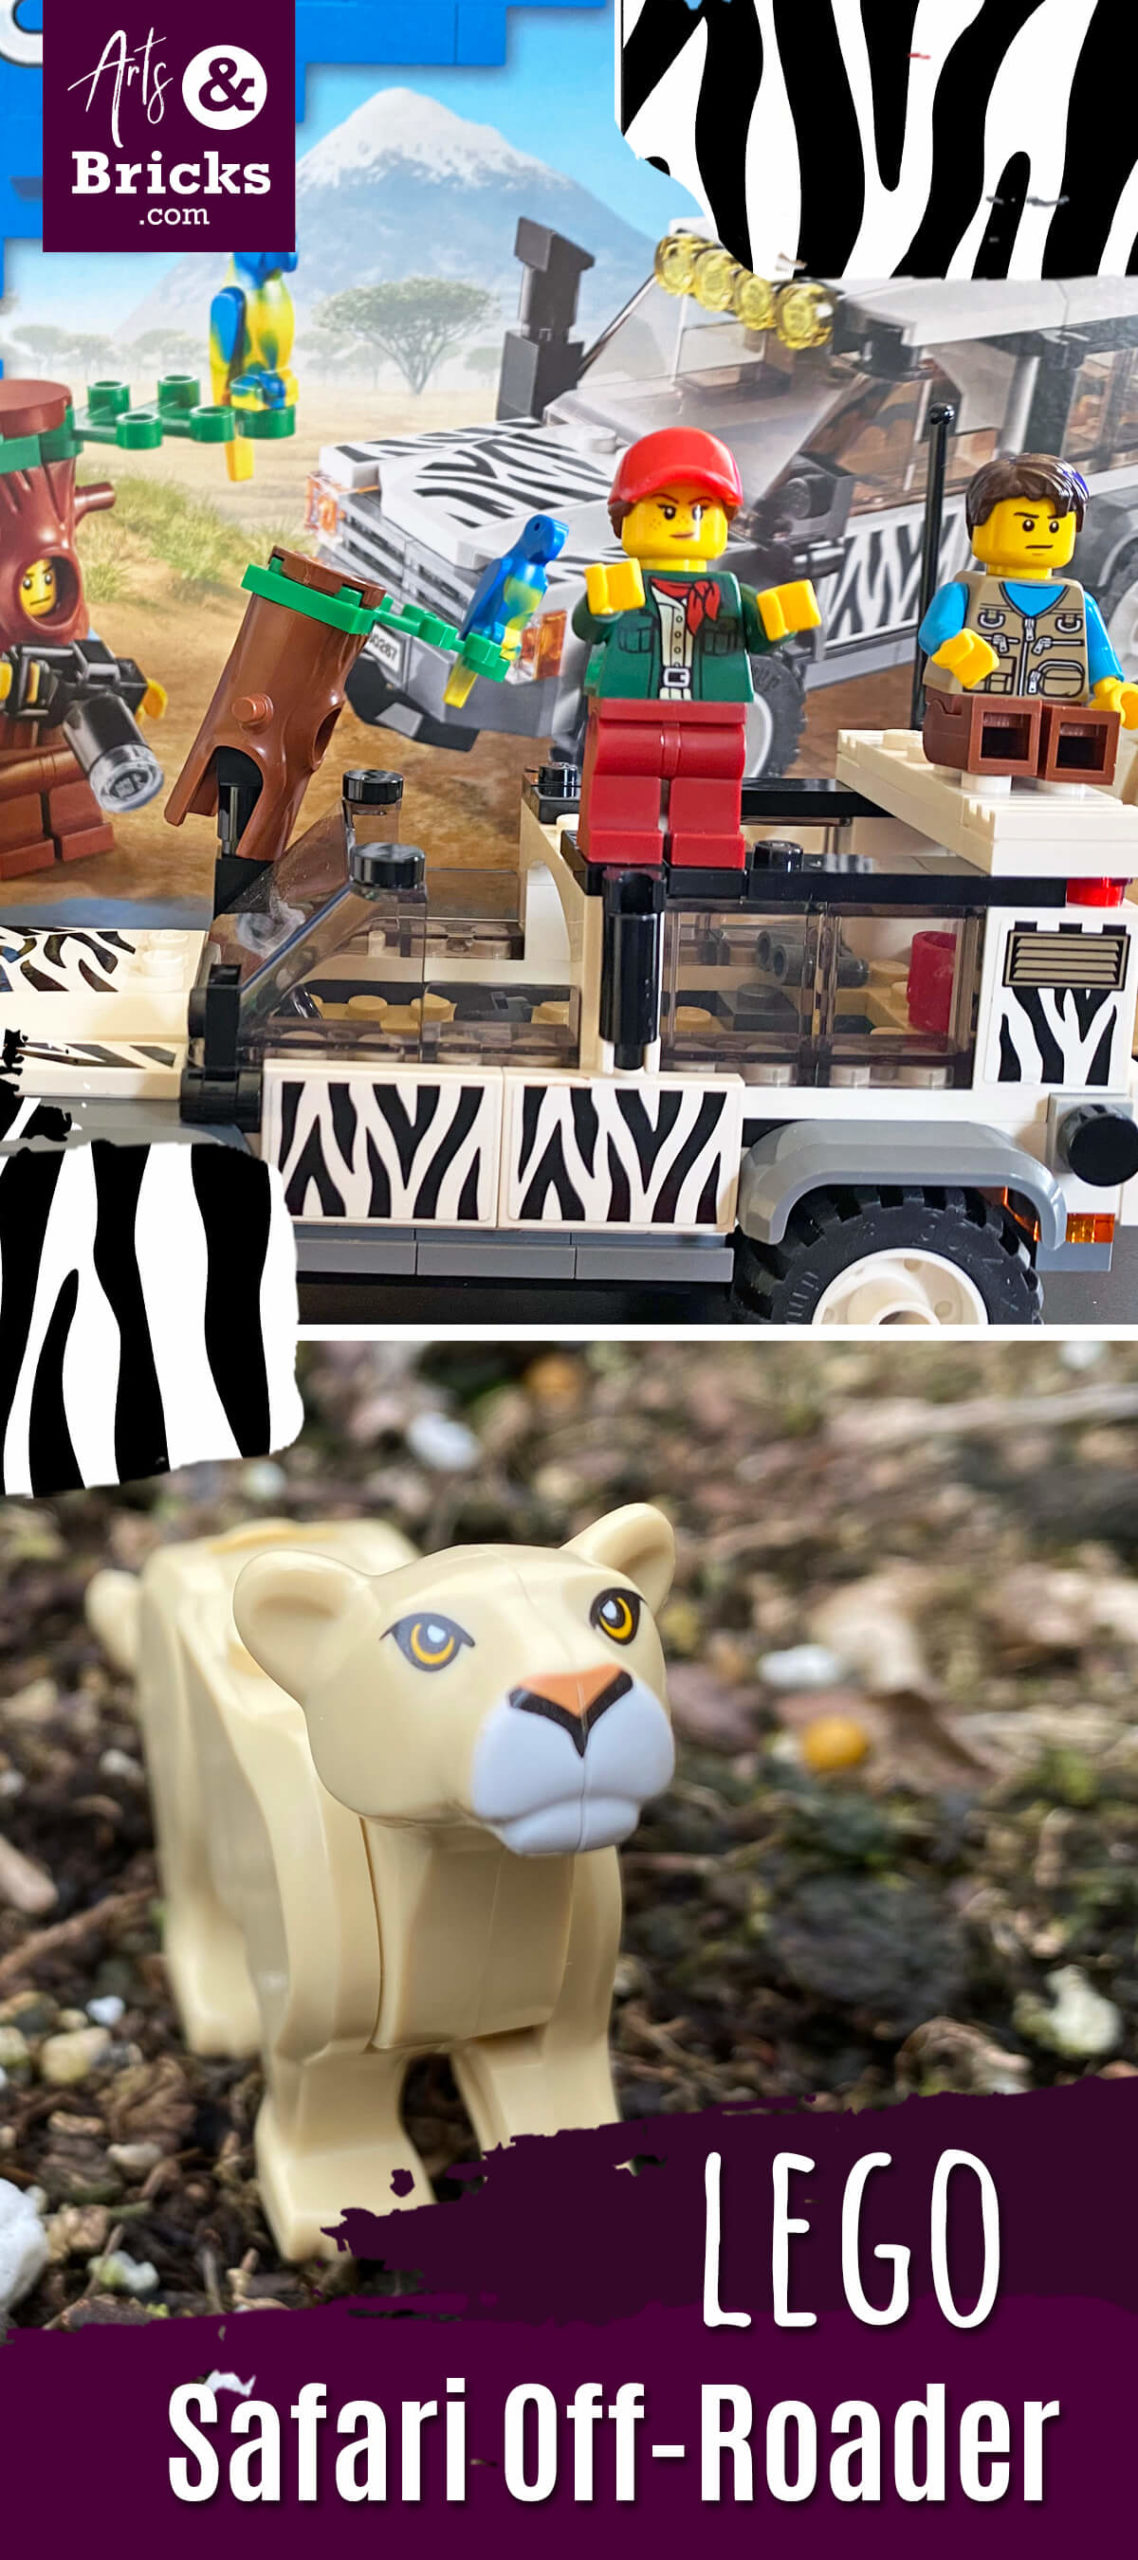 Have a WILD CAT obsessed child? Then this Safari Off-Roader LEGO set is going to be a hit. Learn why in our recent kid-review of this LEGO set: zebra prints, lioness, parrot, camera, double-sided faces and more! #lego #legoset #safari #lion #lionness